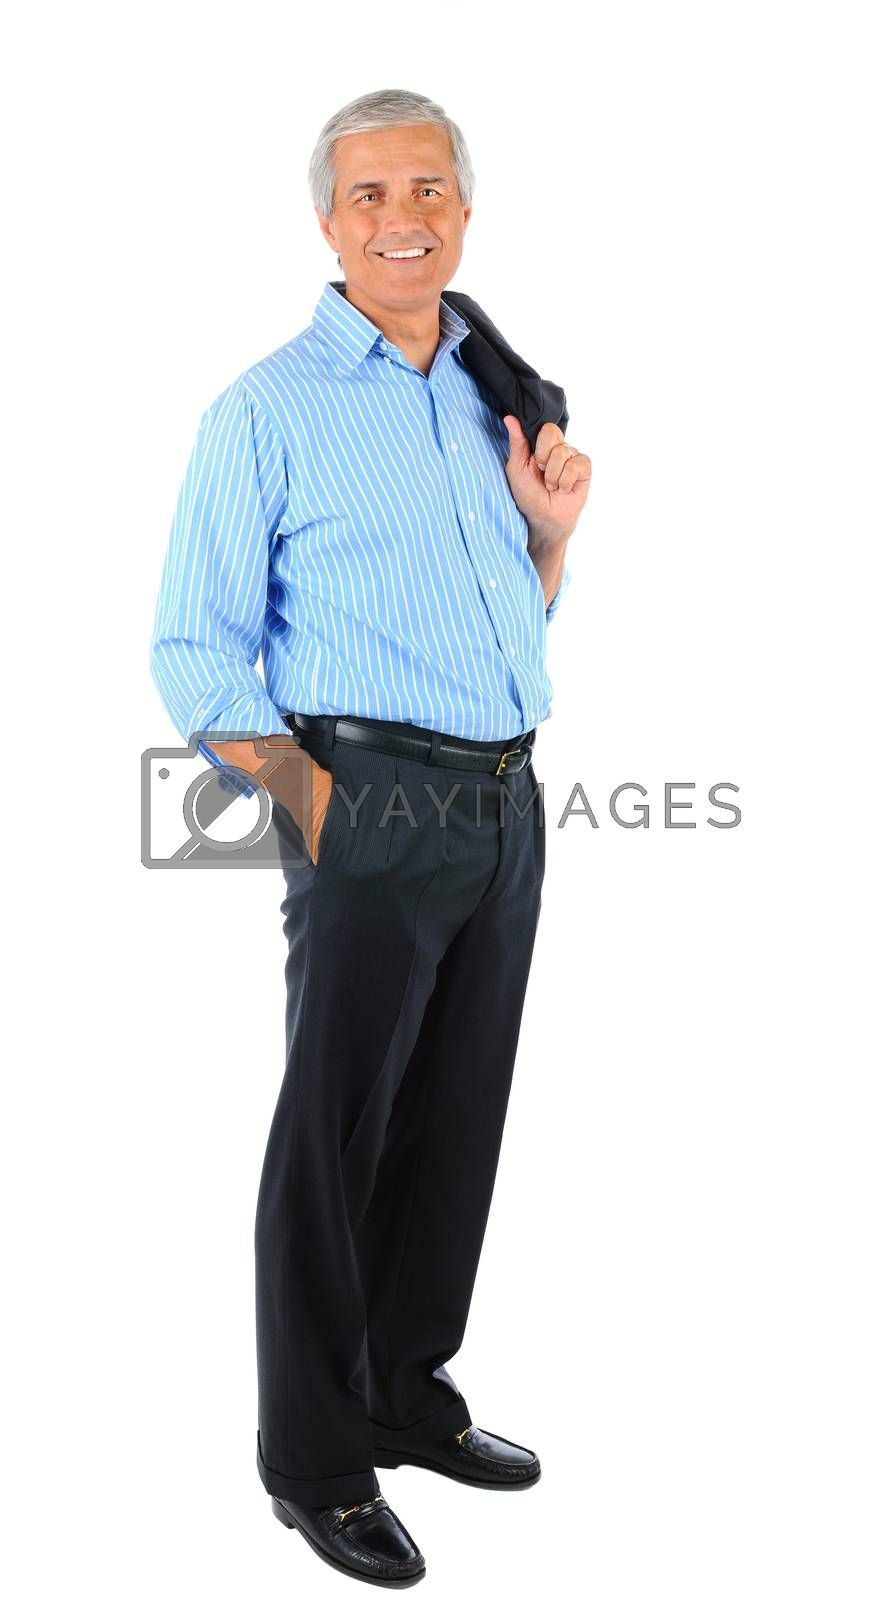 Smiling middle aged businessman standing holding his jacket over his shoulder and one hand in pocket. Full length over a white background.